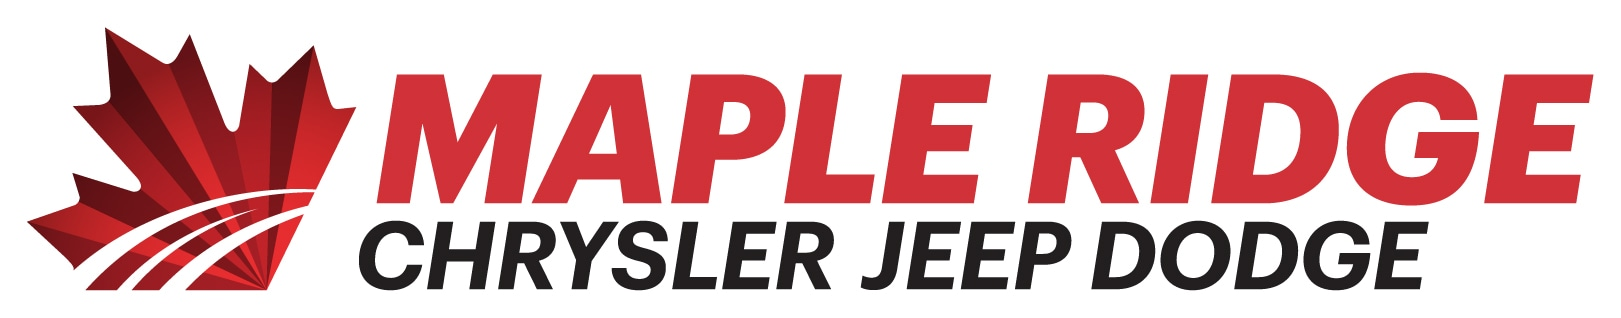 Maple Ridge Chrysler Jeep Dodge logo